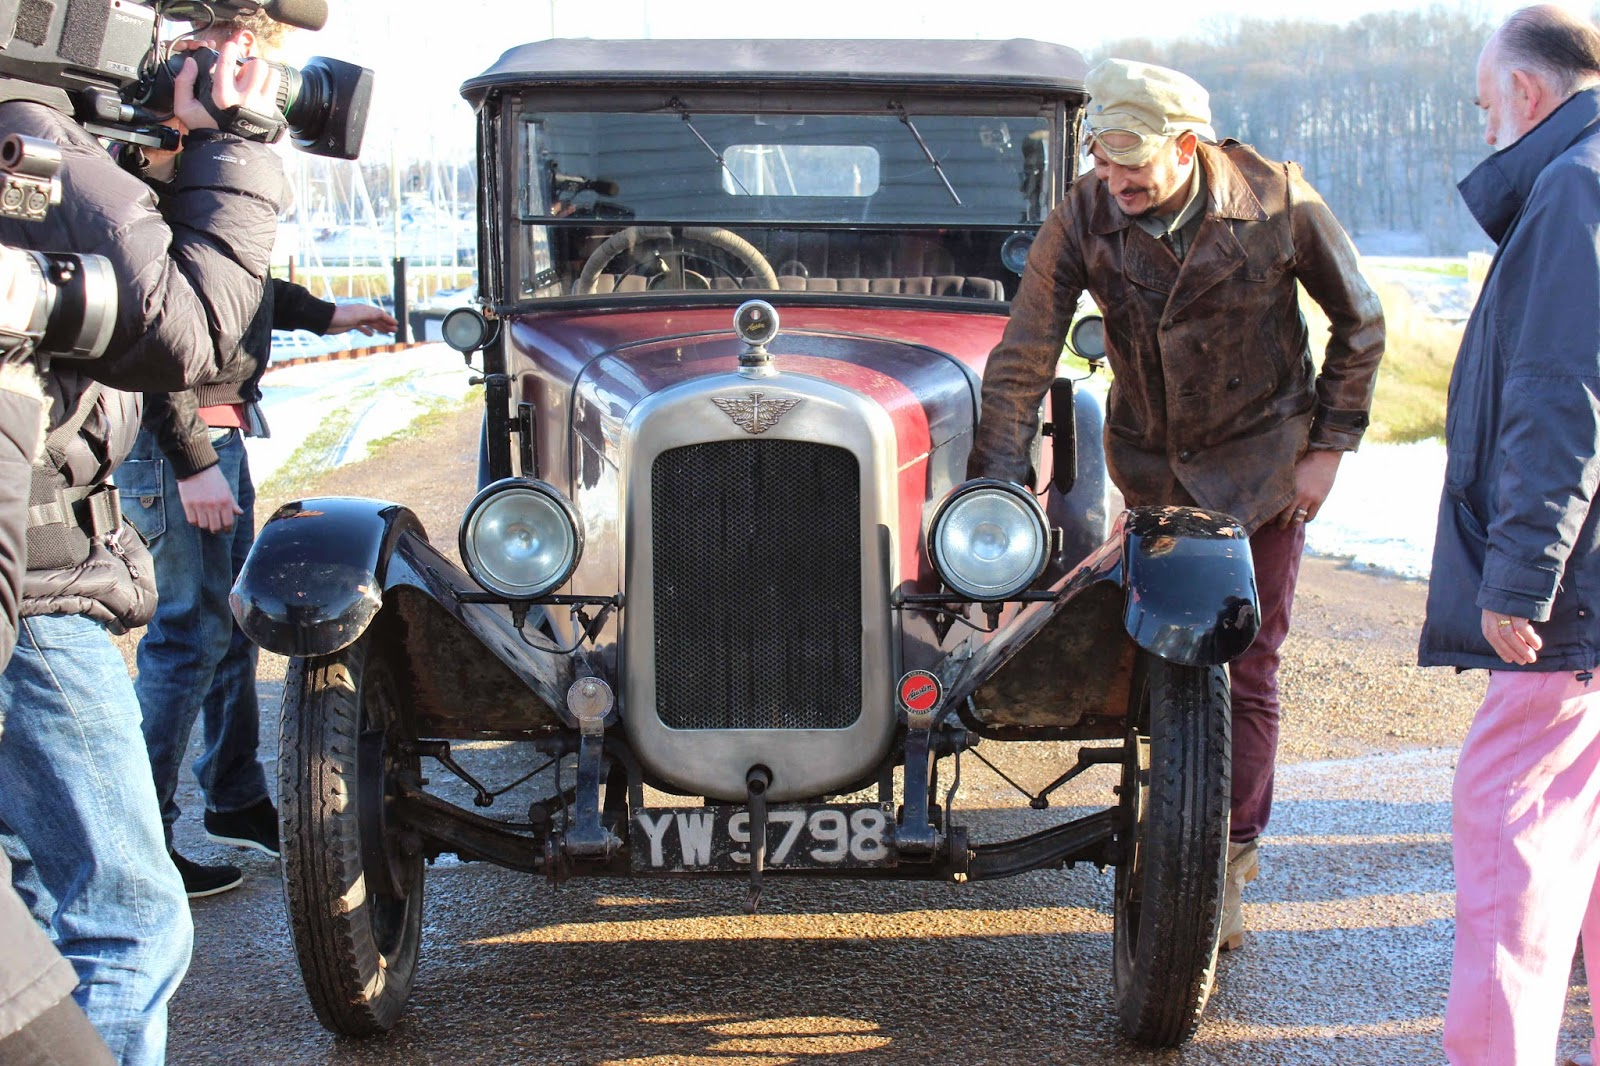 The Golden Spoke Fuzz Townshend Cohosts One Of The Most Loved - Car restoration shows